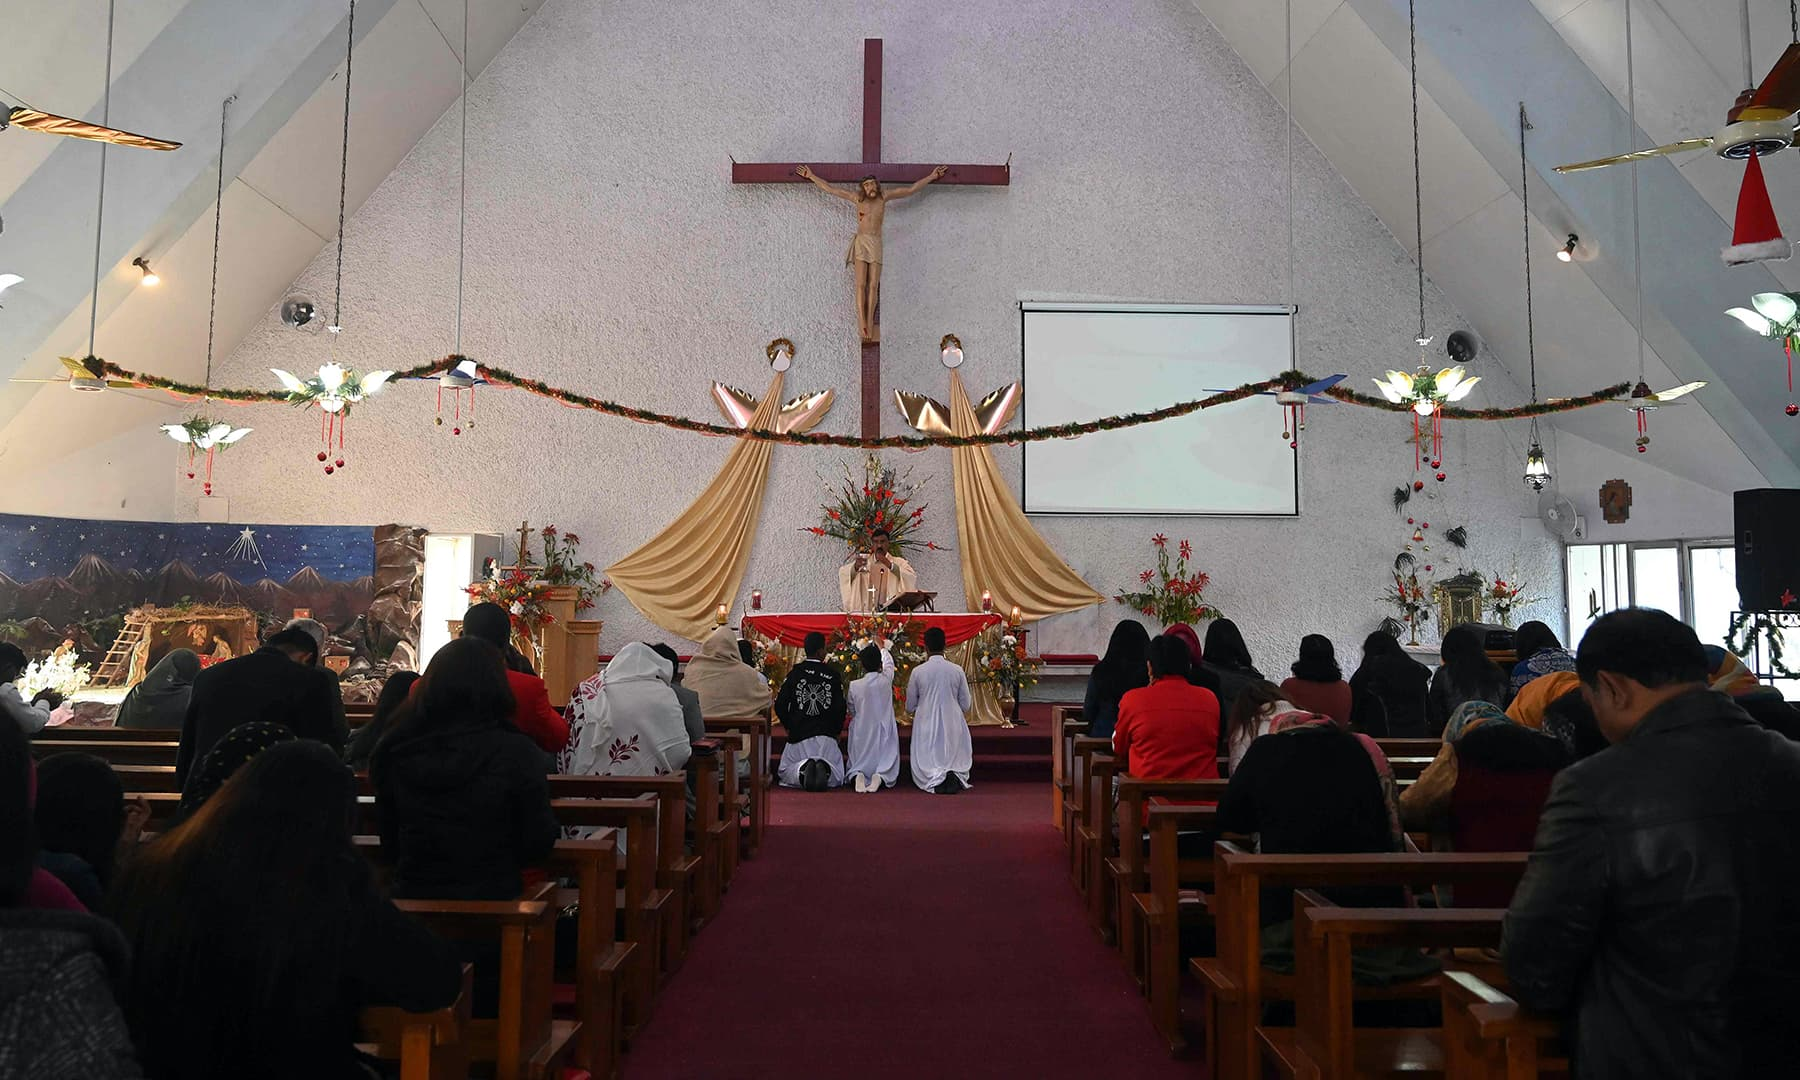 Christian devotees attend Christmas Day prayers at Fatima Church in Islamabad. — AFP